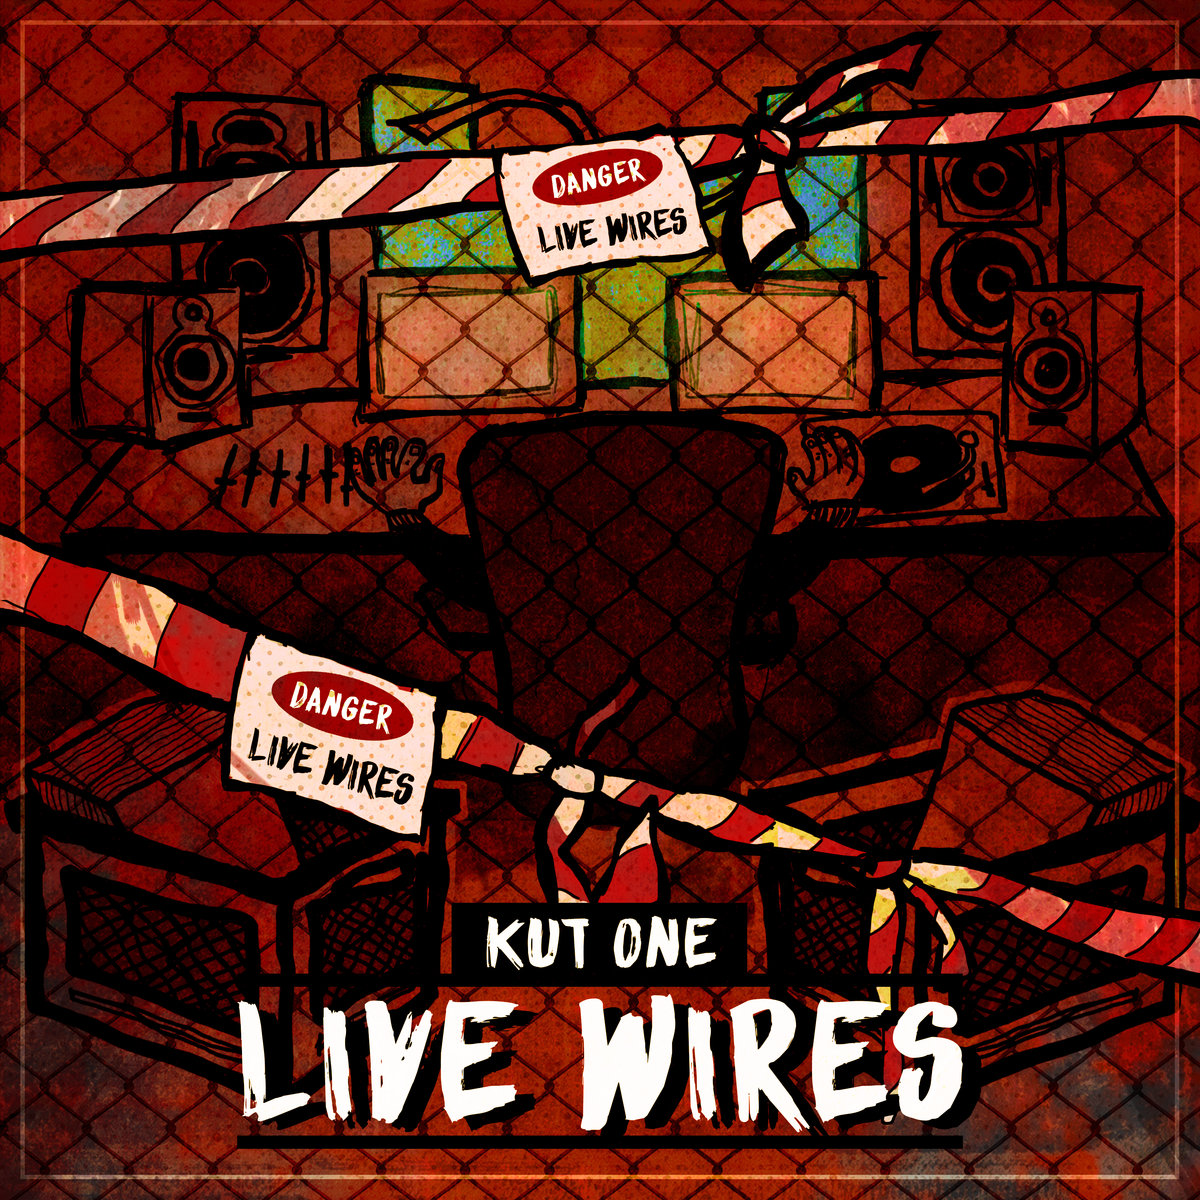 Live_wires_kut_one